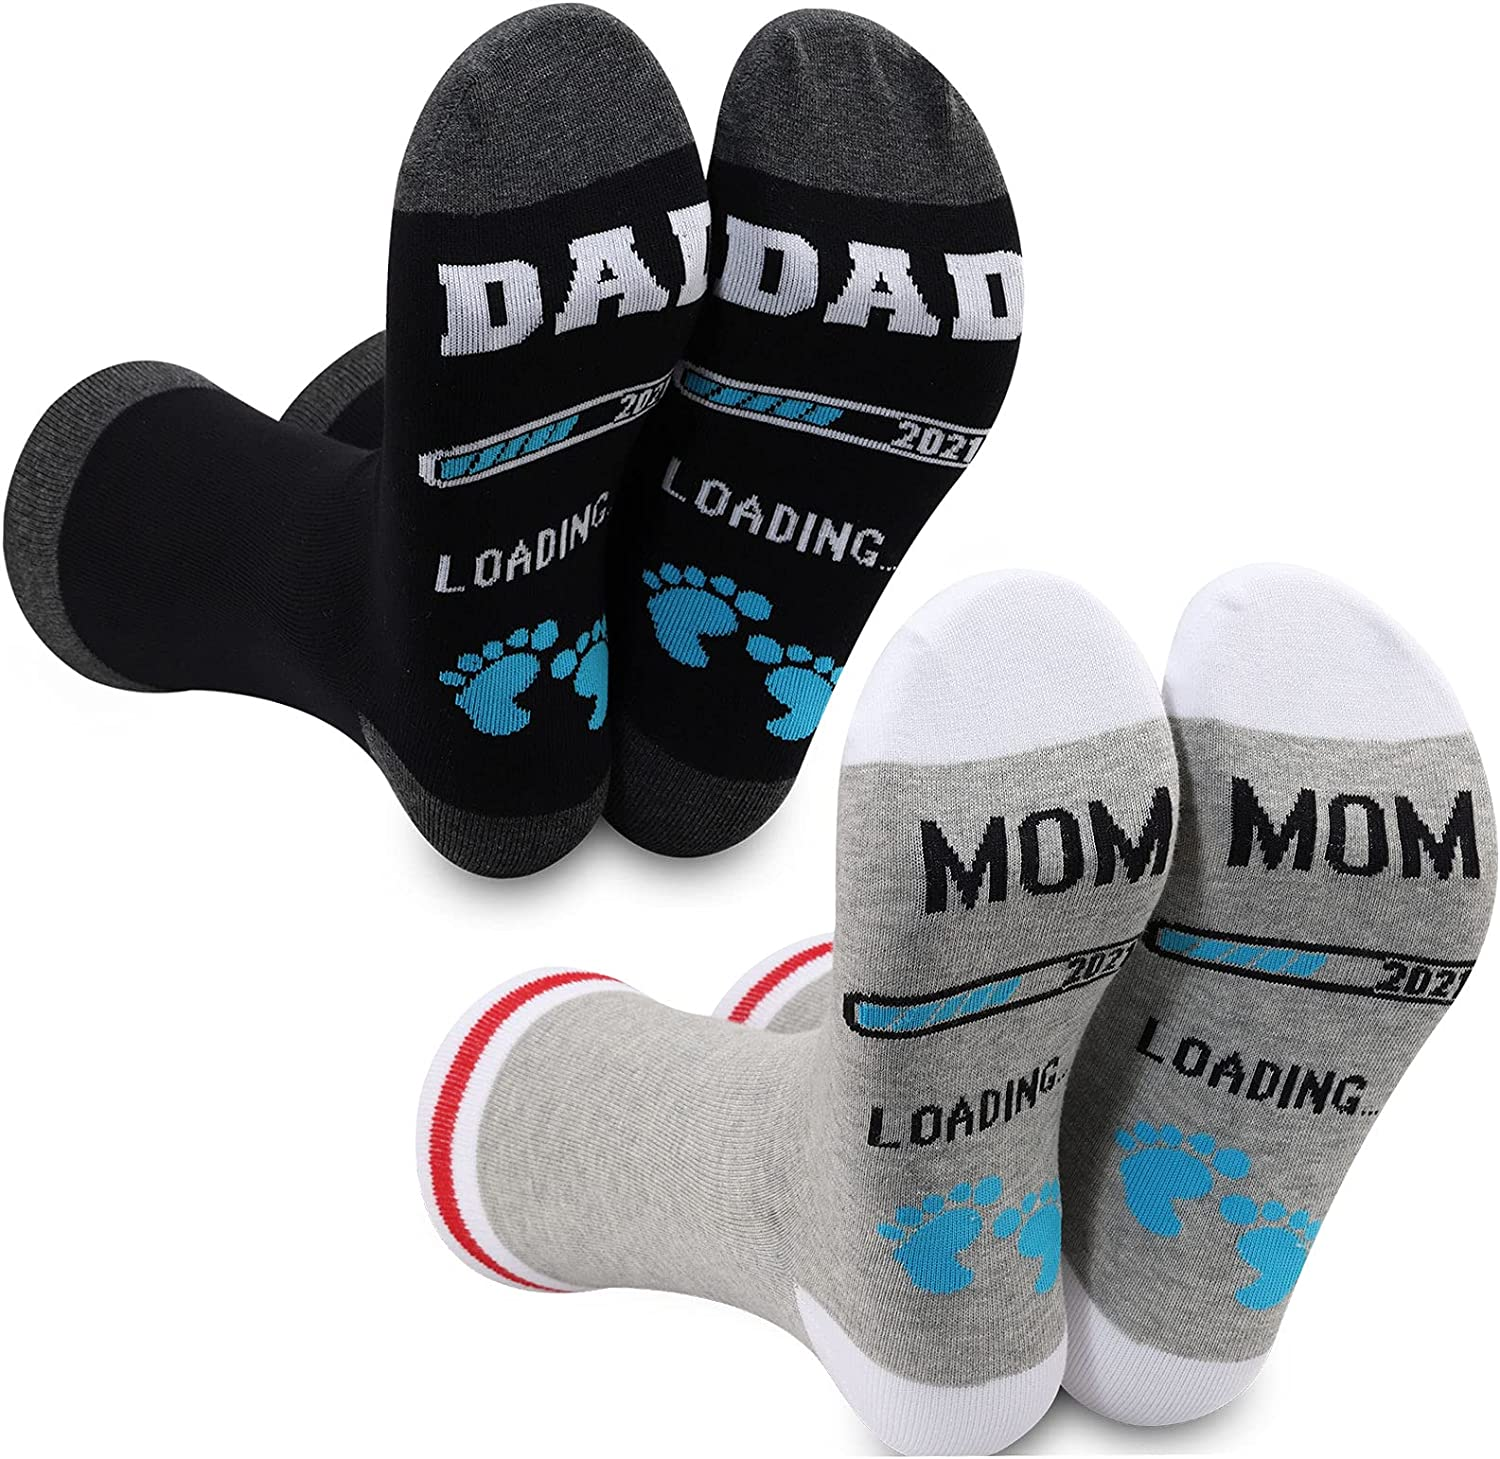 LEVLO 2 Pairs Dad Mom Pregnancy Announcement Socks First Time New Mom Dad to be Gift Mom Dad 2021 Loading Novelty Socks